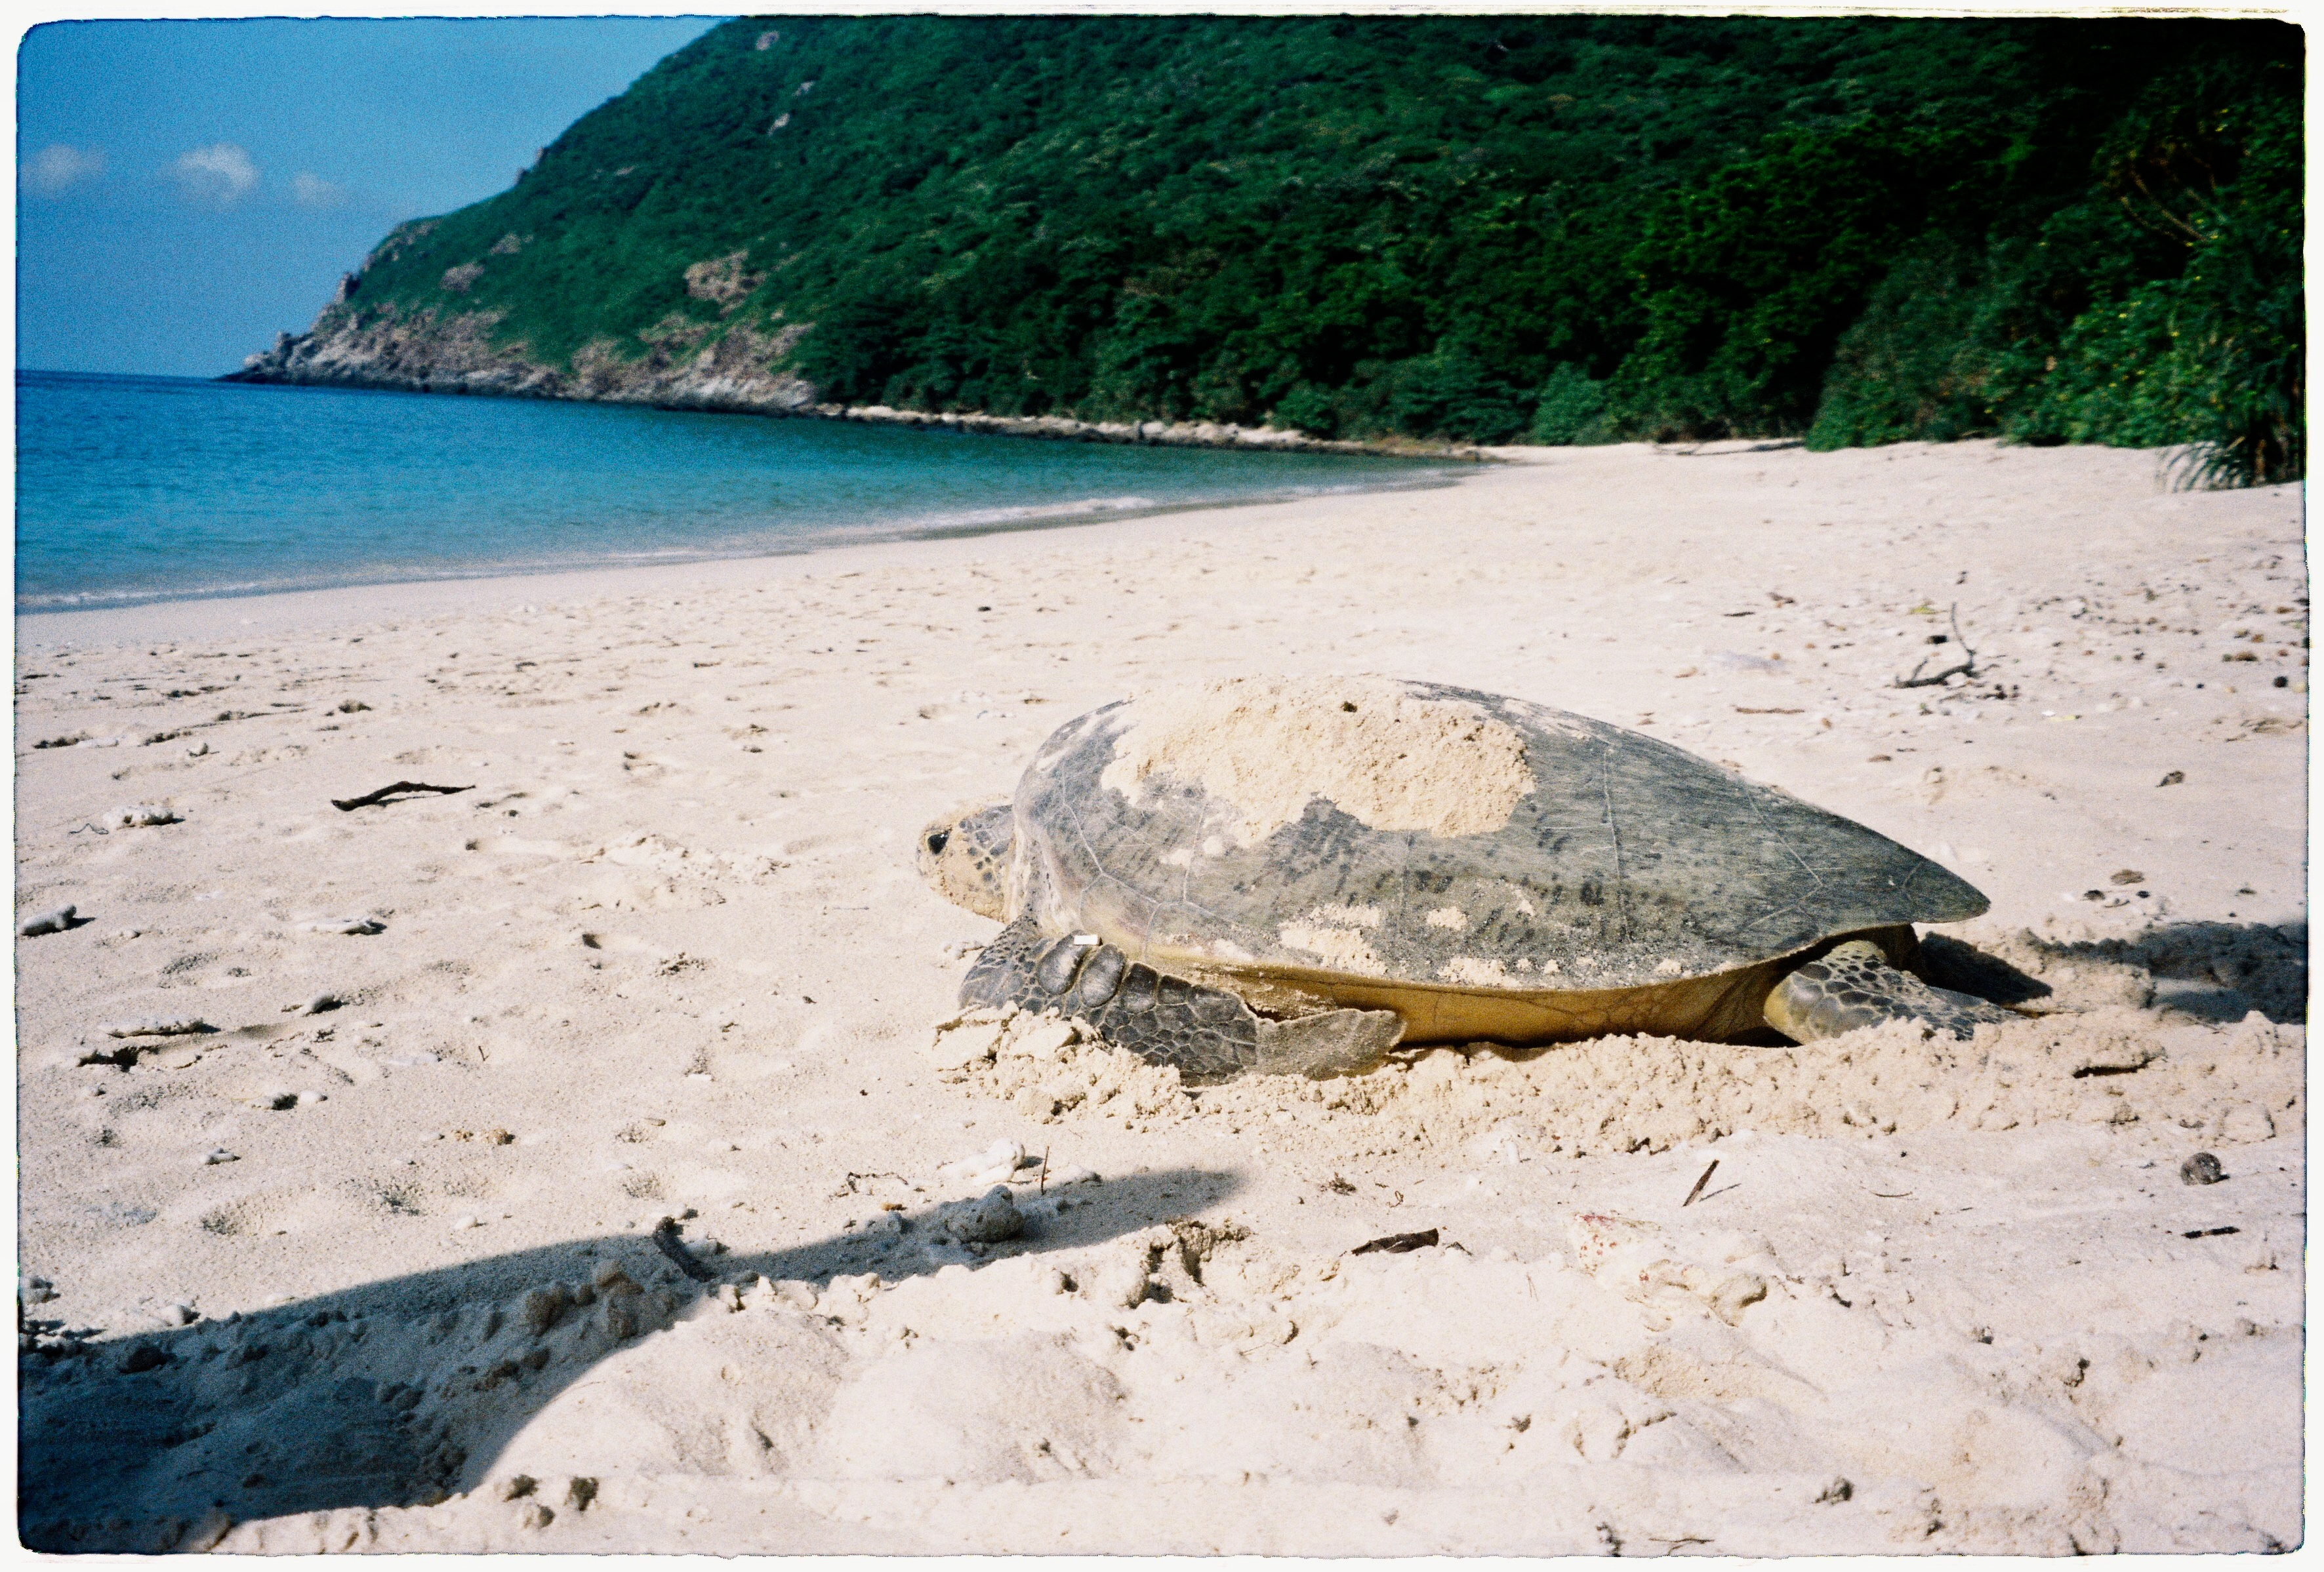 [Photos] The Childhood of Con Dao's Baby Turtles Caught on Film